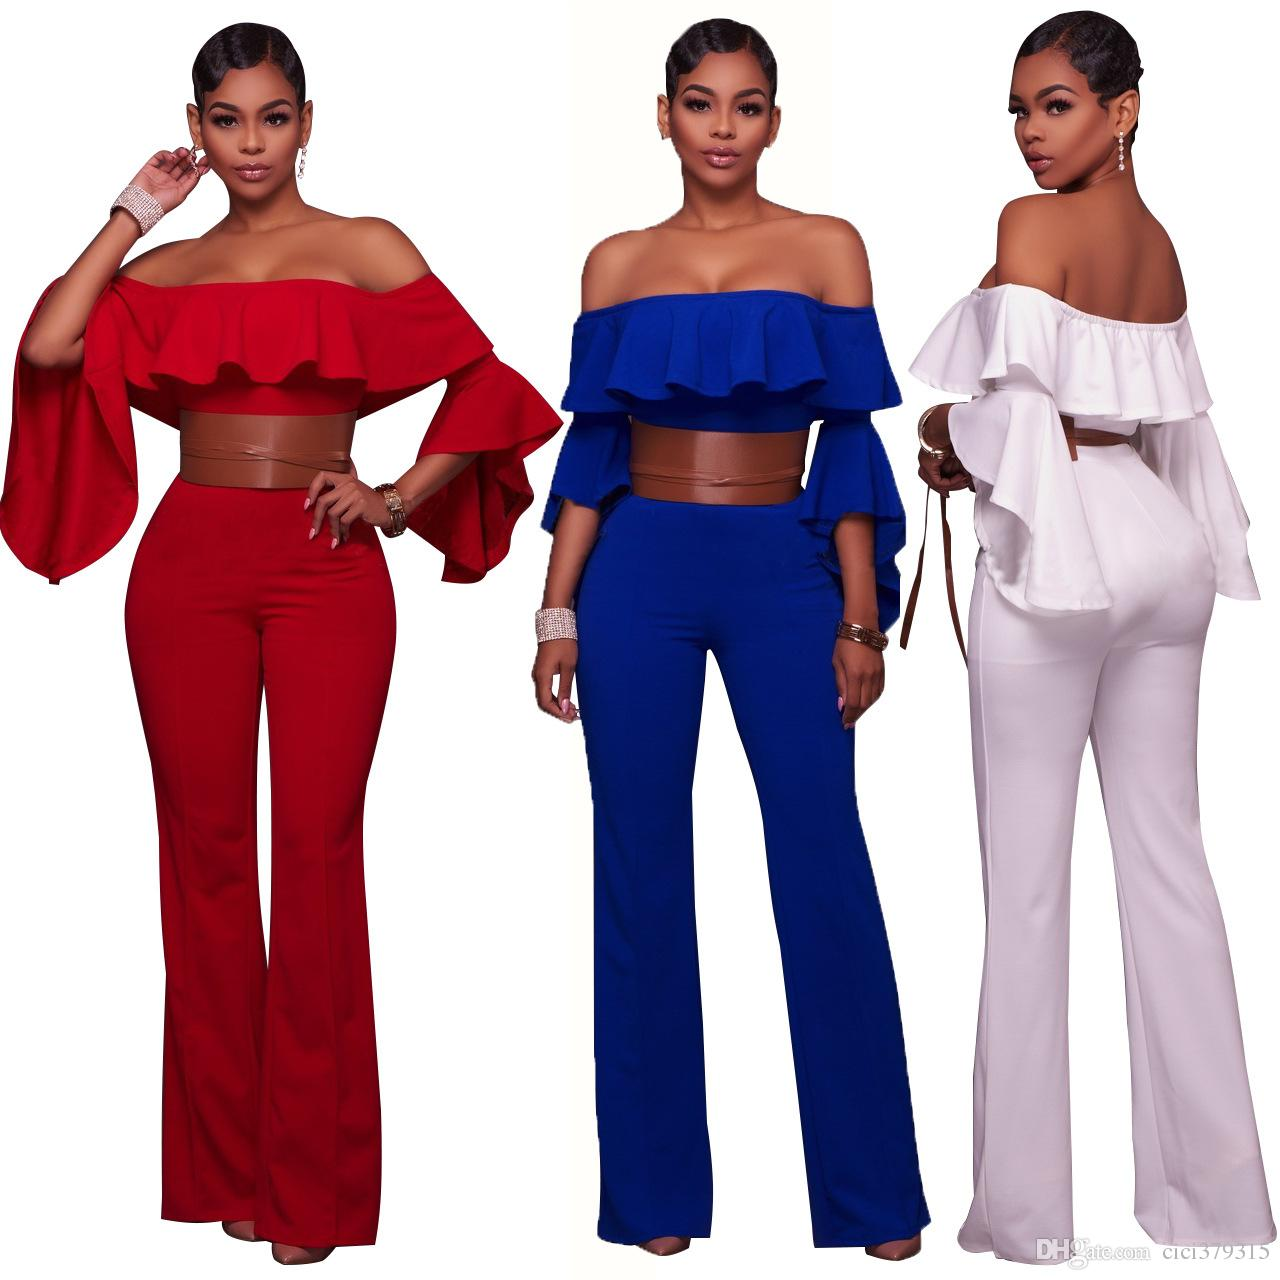 4b879afc8e92 Women Bodysuits Elegant Jumpsuit Strapless Slash Neck Hot Fashion Casual  Full Length Sexy Rompers With Belt Party Club Wear Sexy Rompers Women  Bodysuits ...